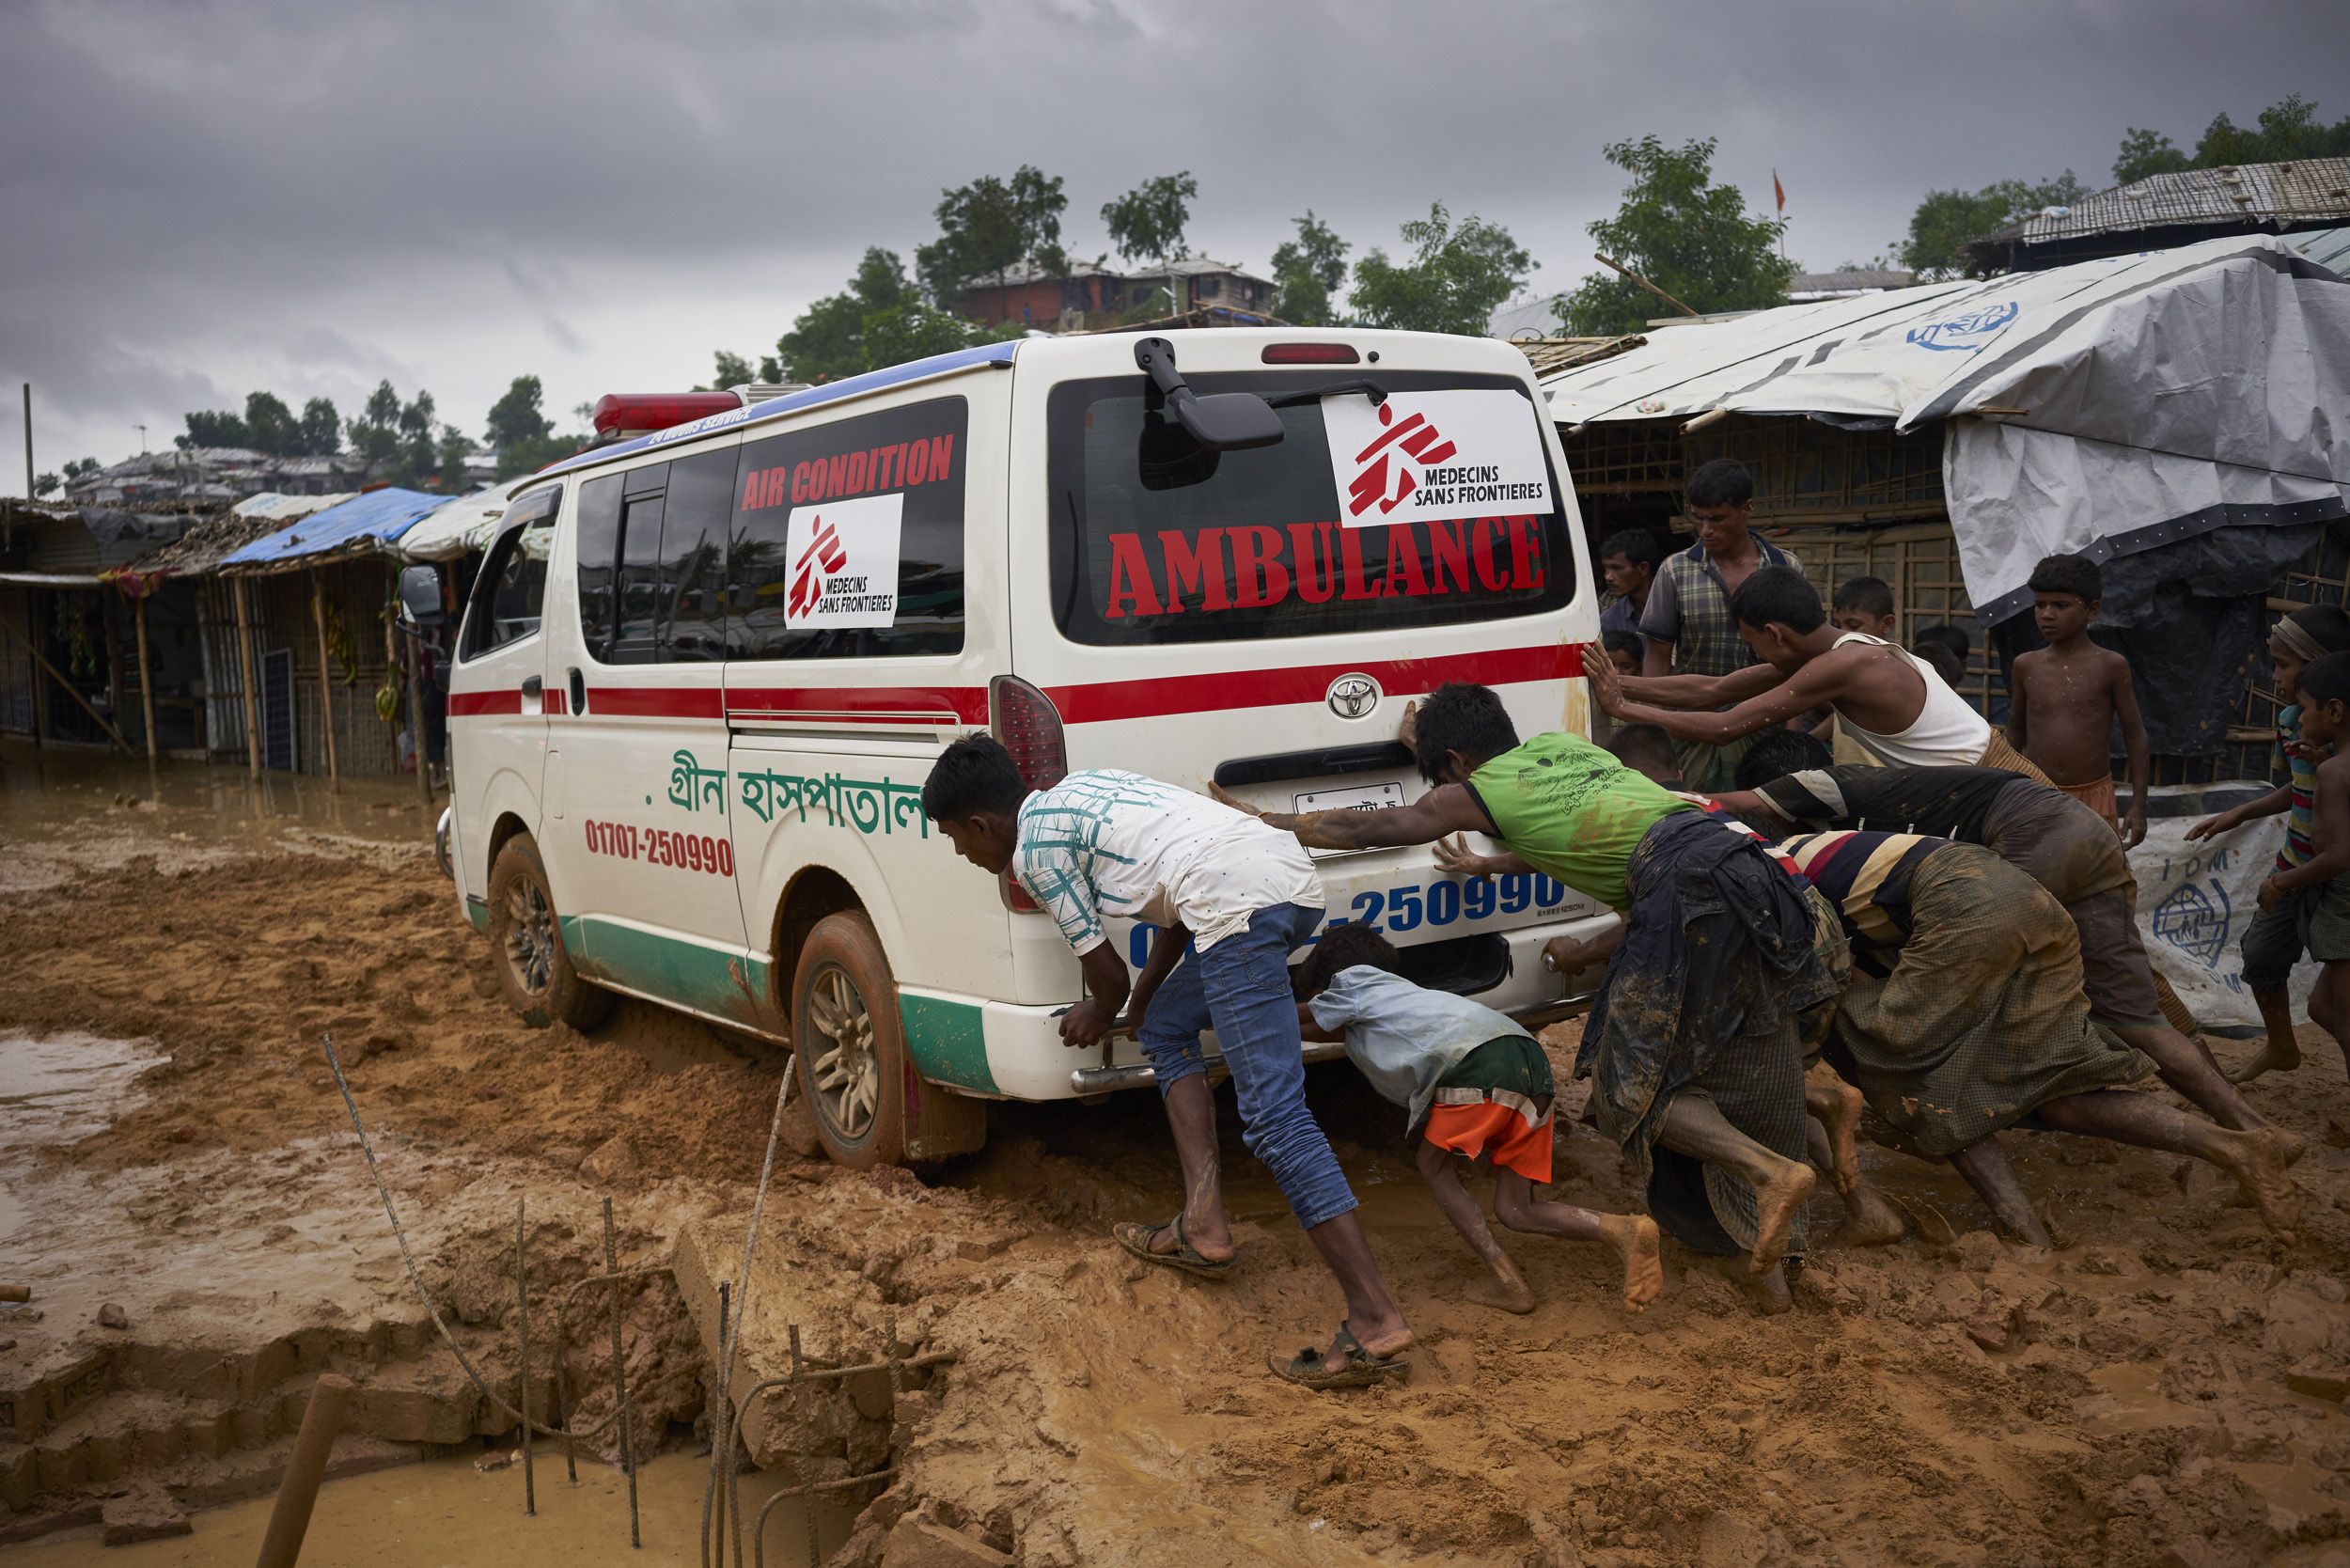 Rohingya refugees help push an ambulance stuck on a road damaged by heavy monsoon rains in Kutupalong Expansion Site for Rohingya refugees, Ukhia, Cox's Bazar District, Bangladesh.